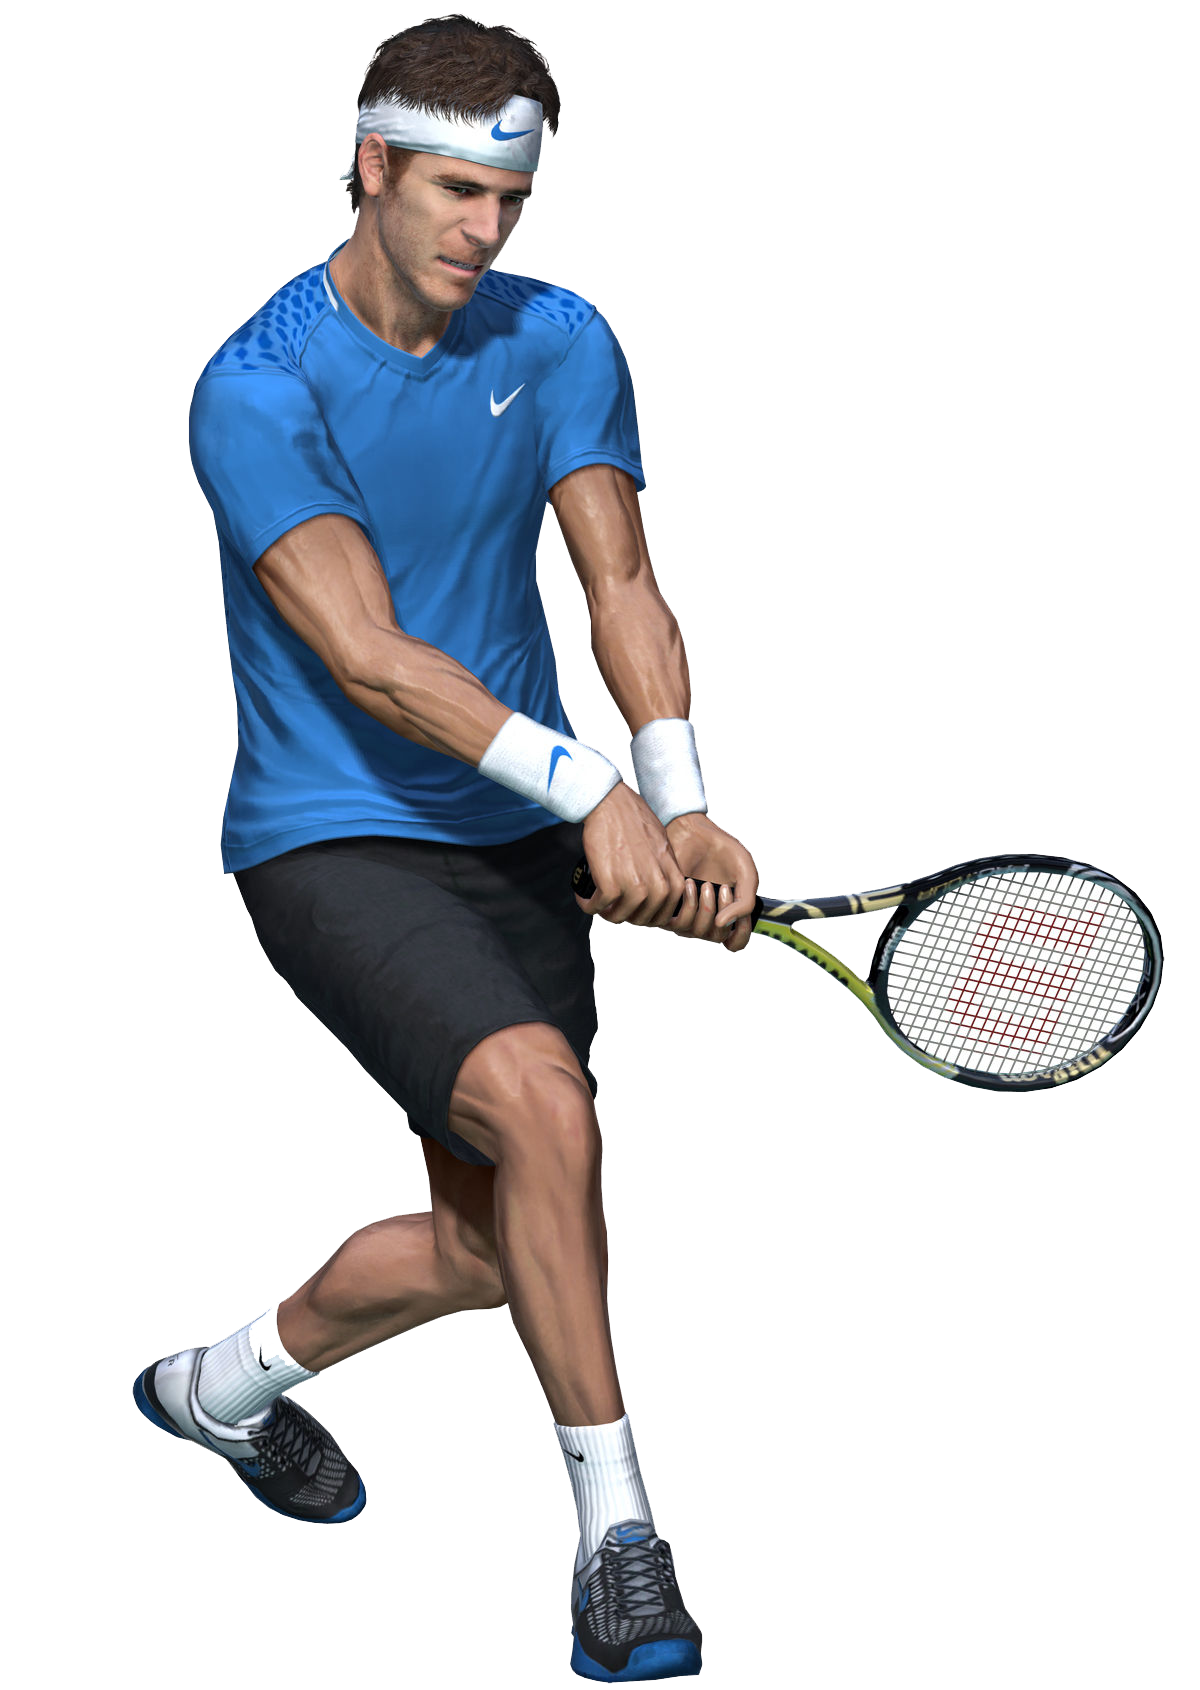 Tennis player man PNG image Tennis player man PNG image.